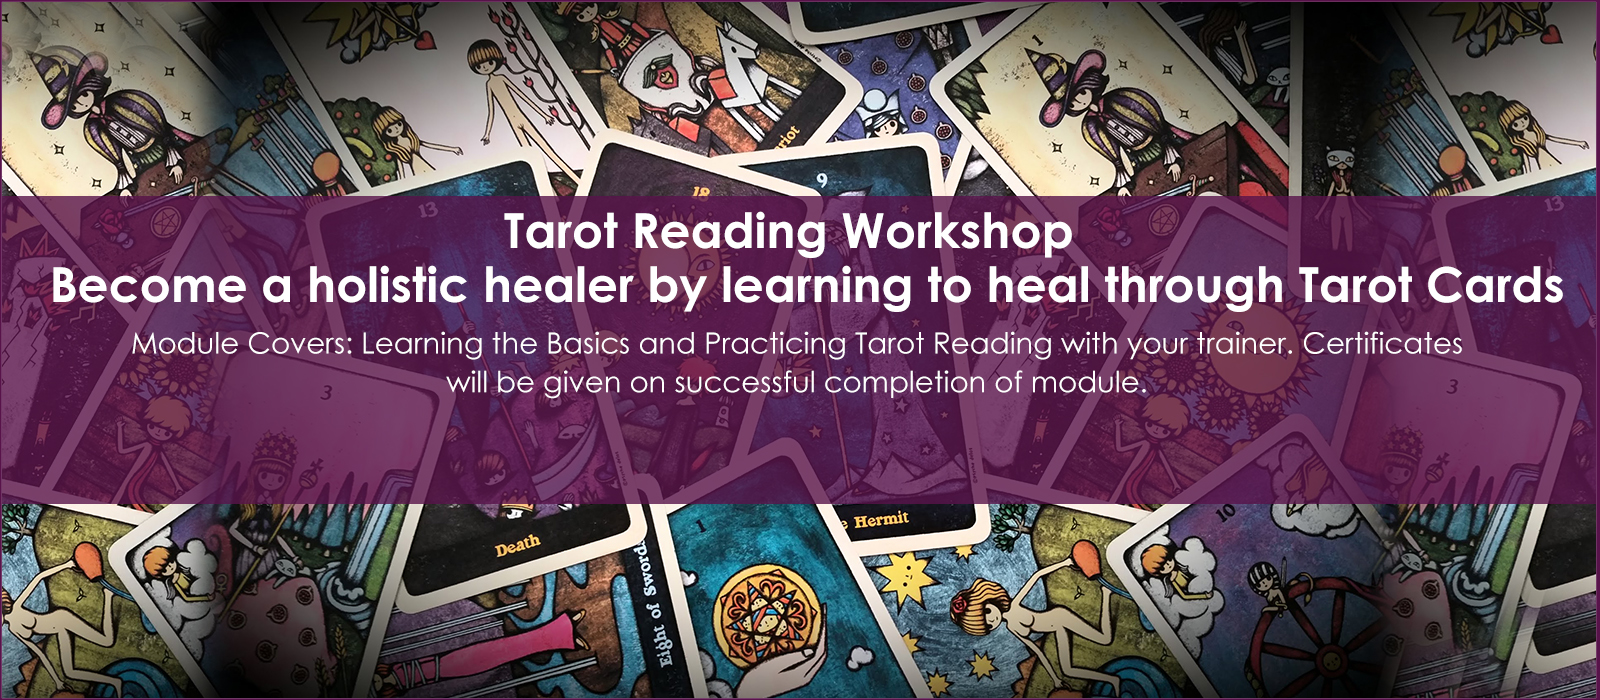 Tarot Card Reading Workshop